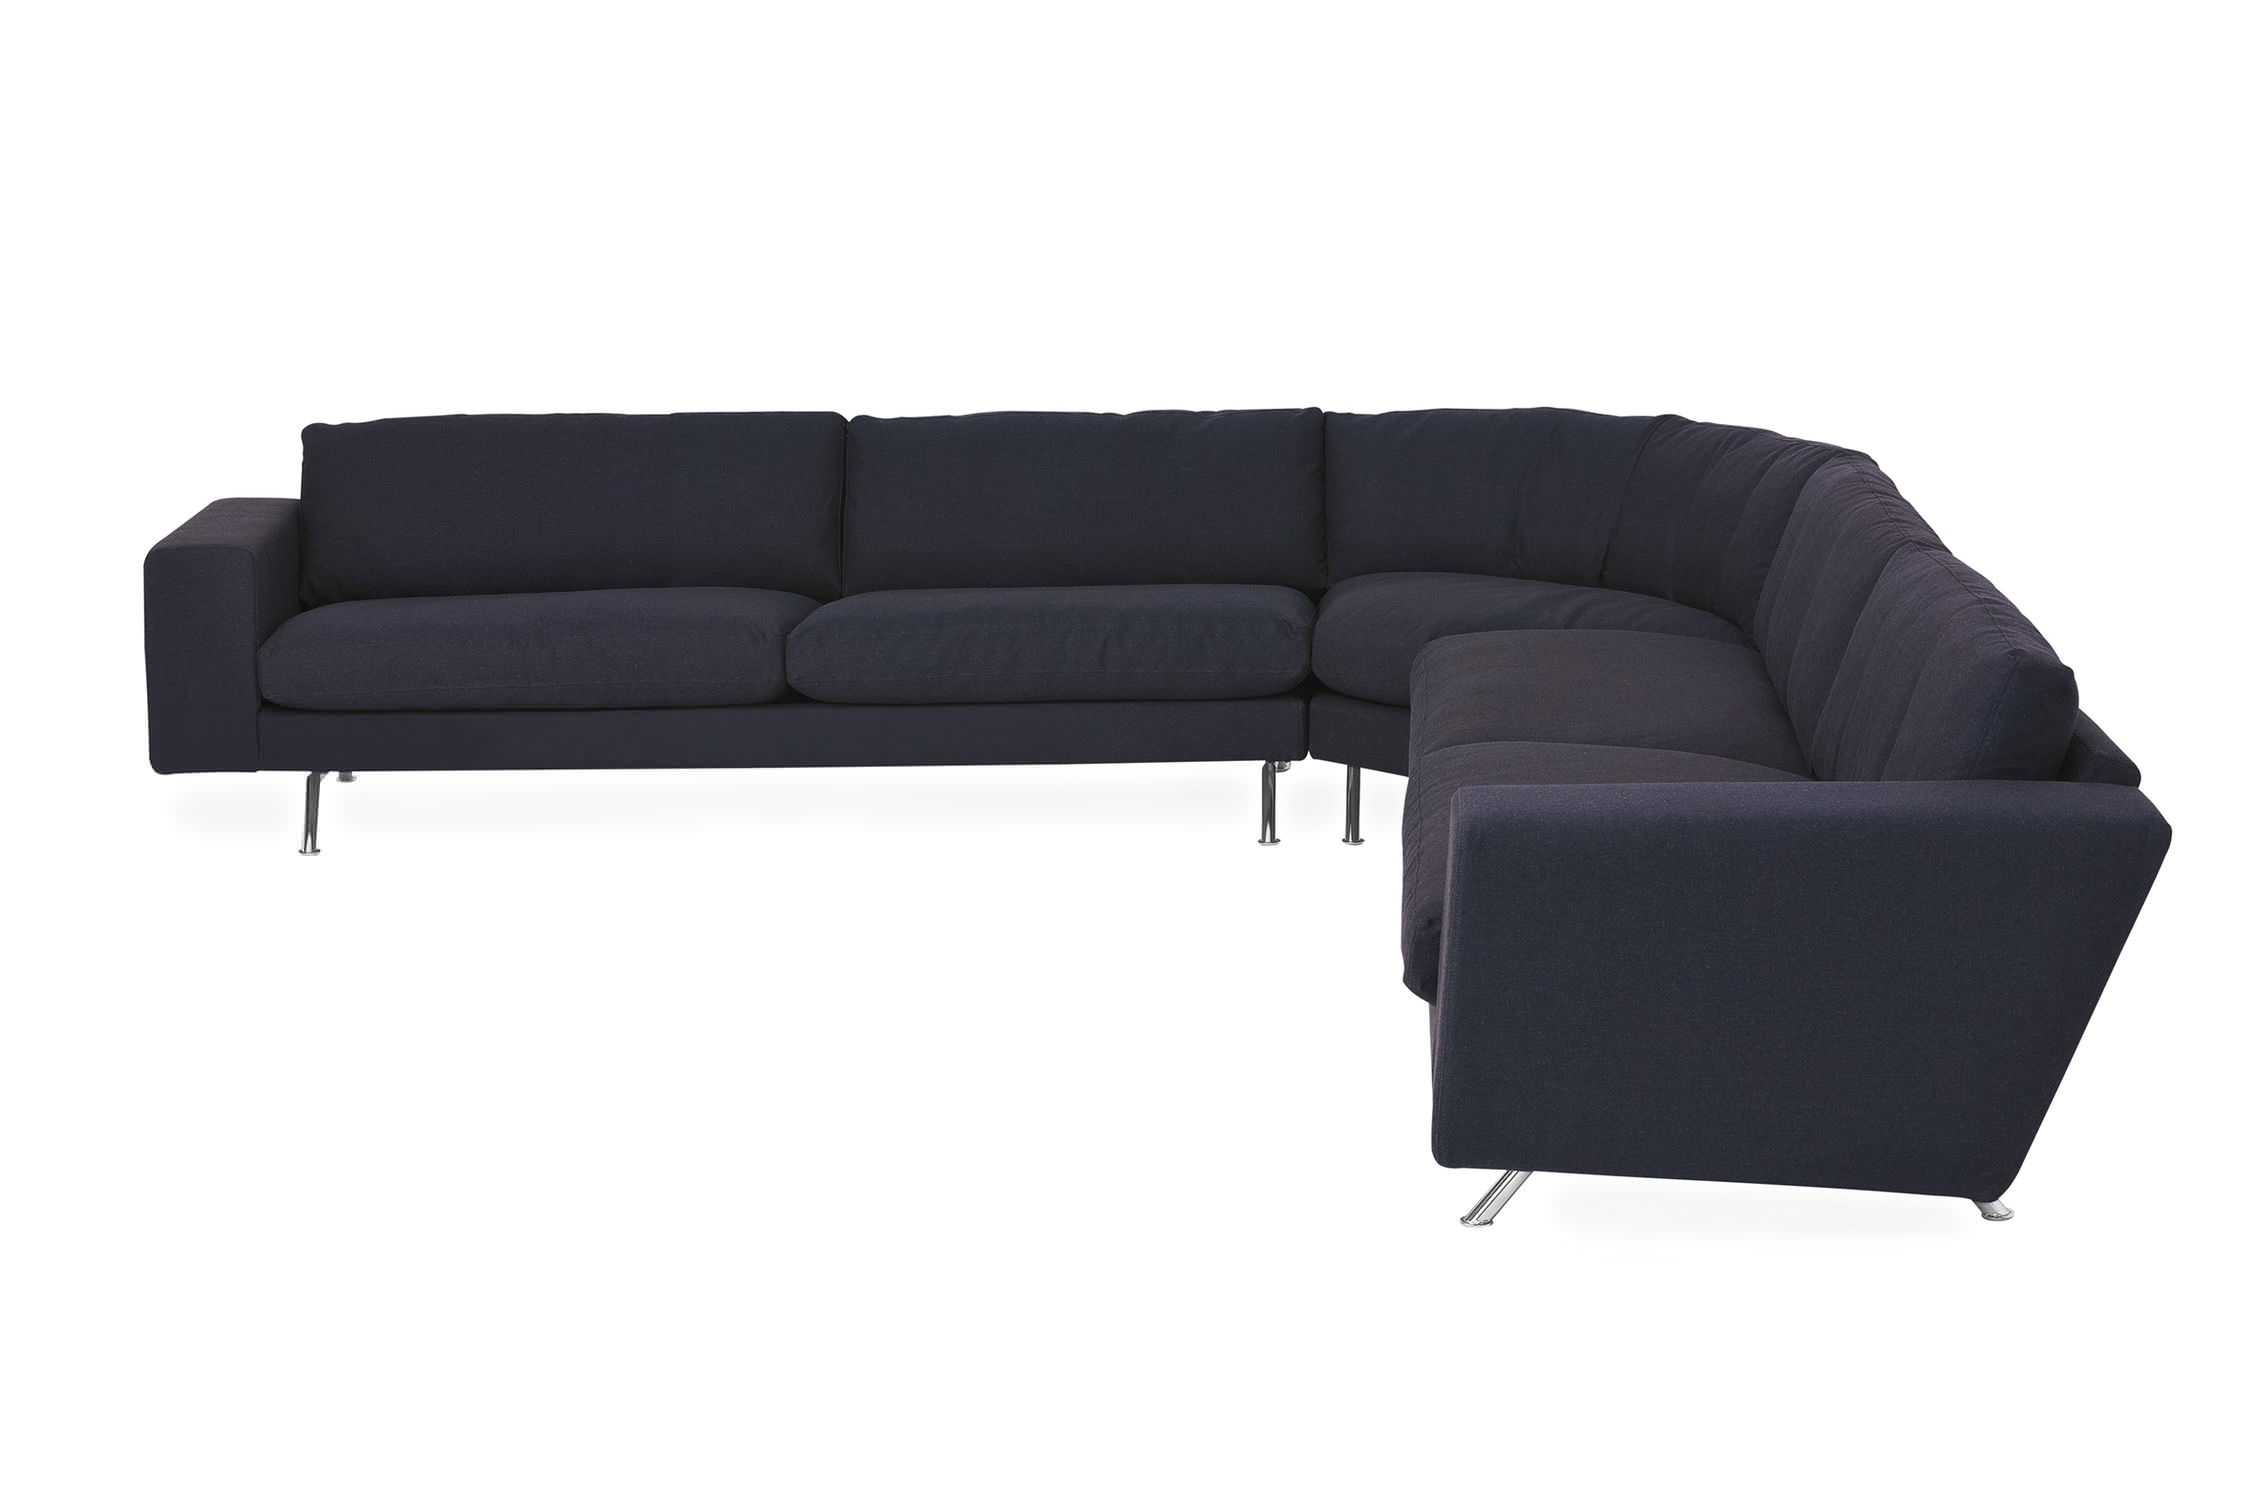 Modular Sofa Corner Contemporary Fabric Chill Carl In Modular Corner Sofas (Image 12 of 15)